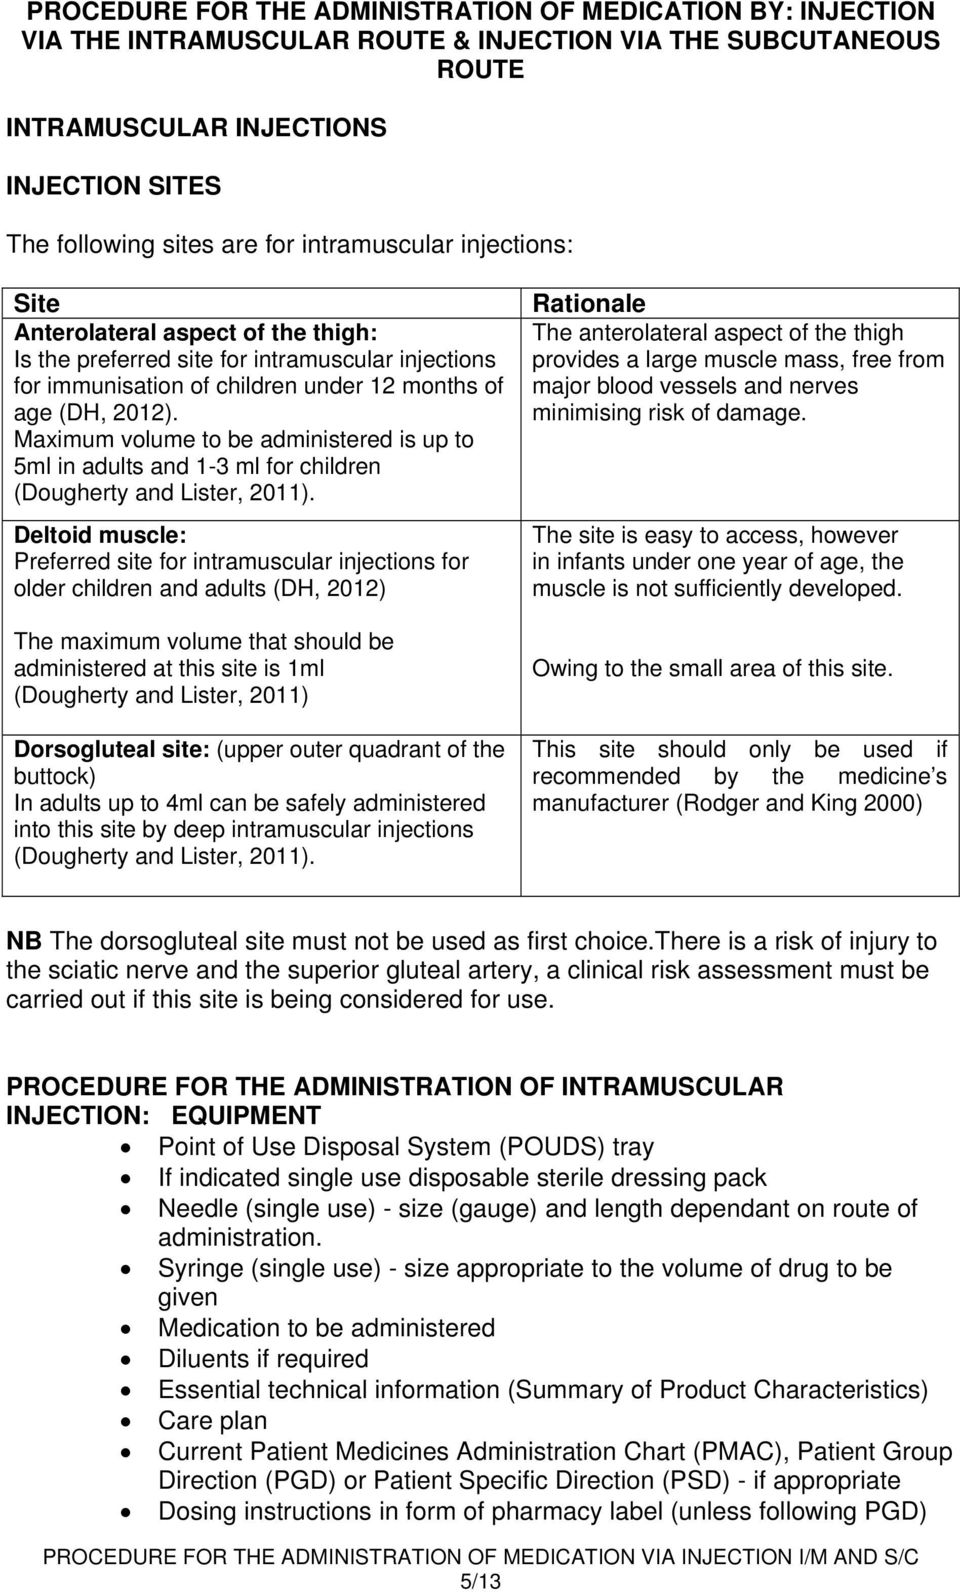 procedure for the administration of medication by injection via the